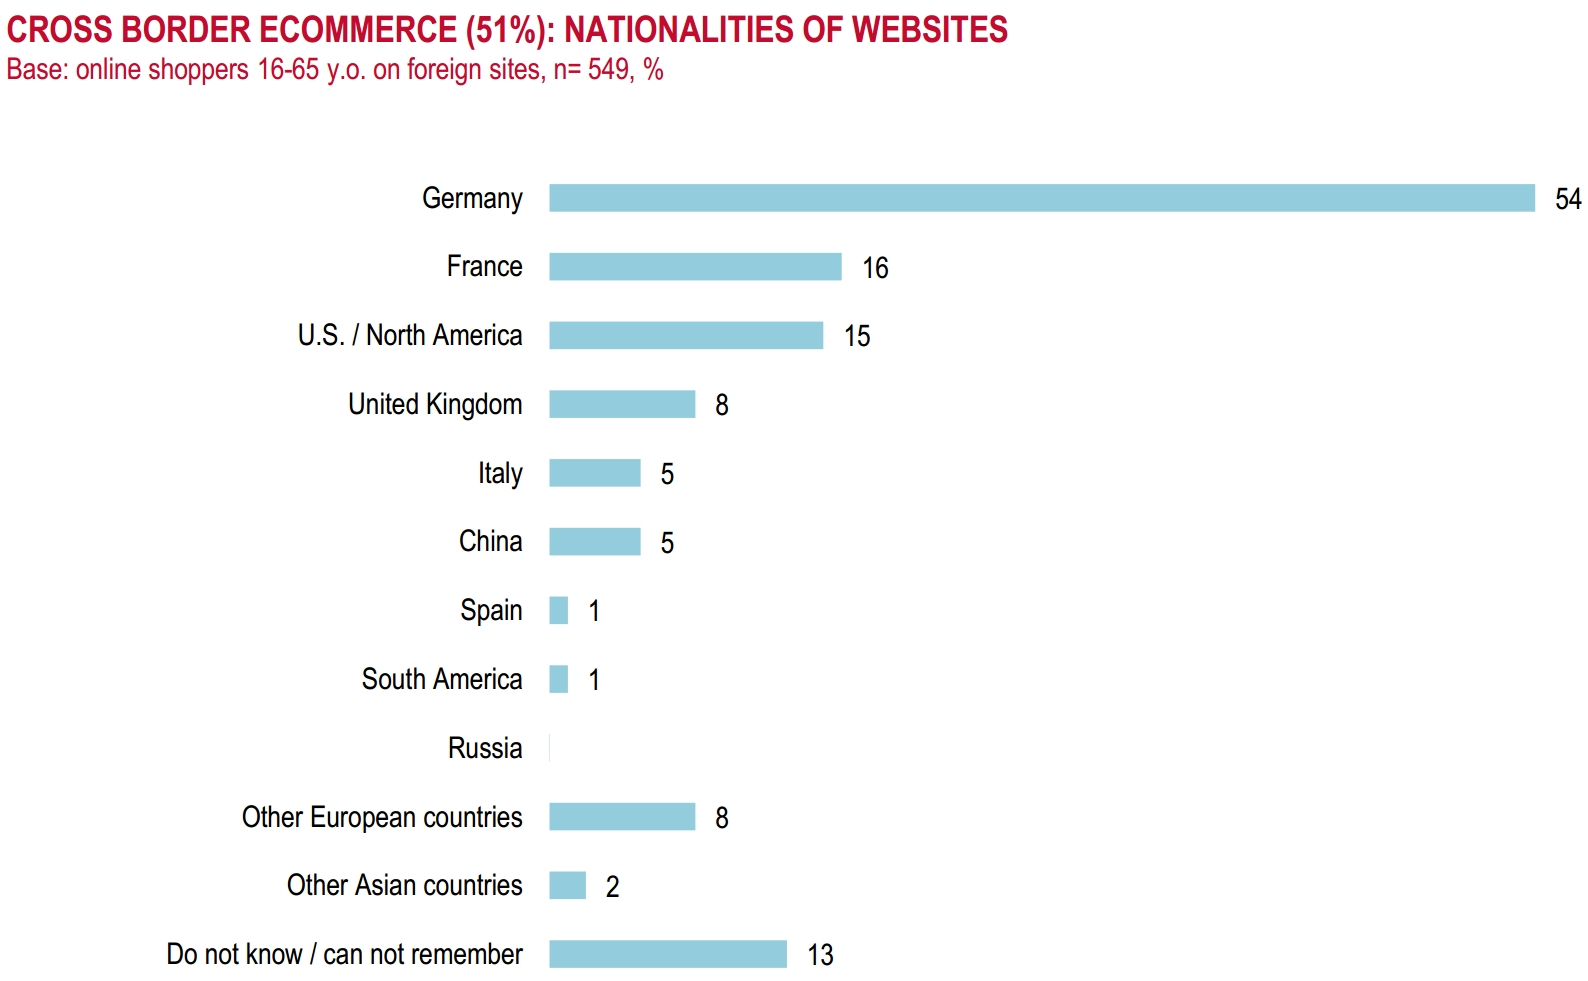 Cross-border ecommerce in Switzerland